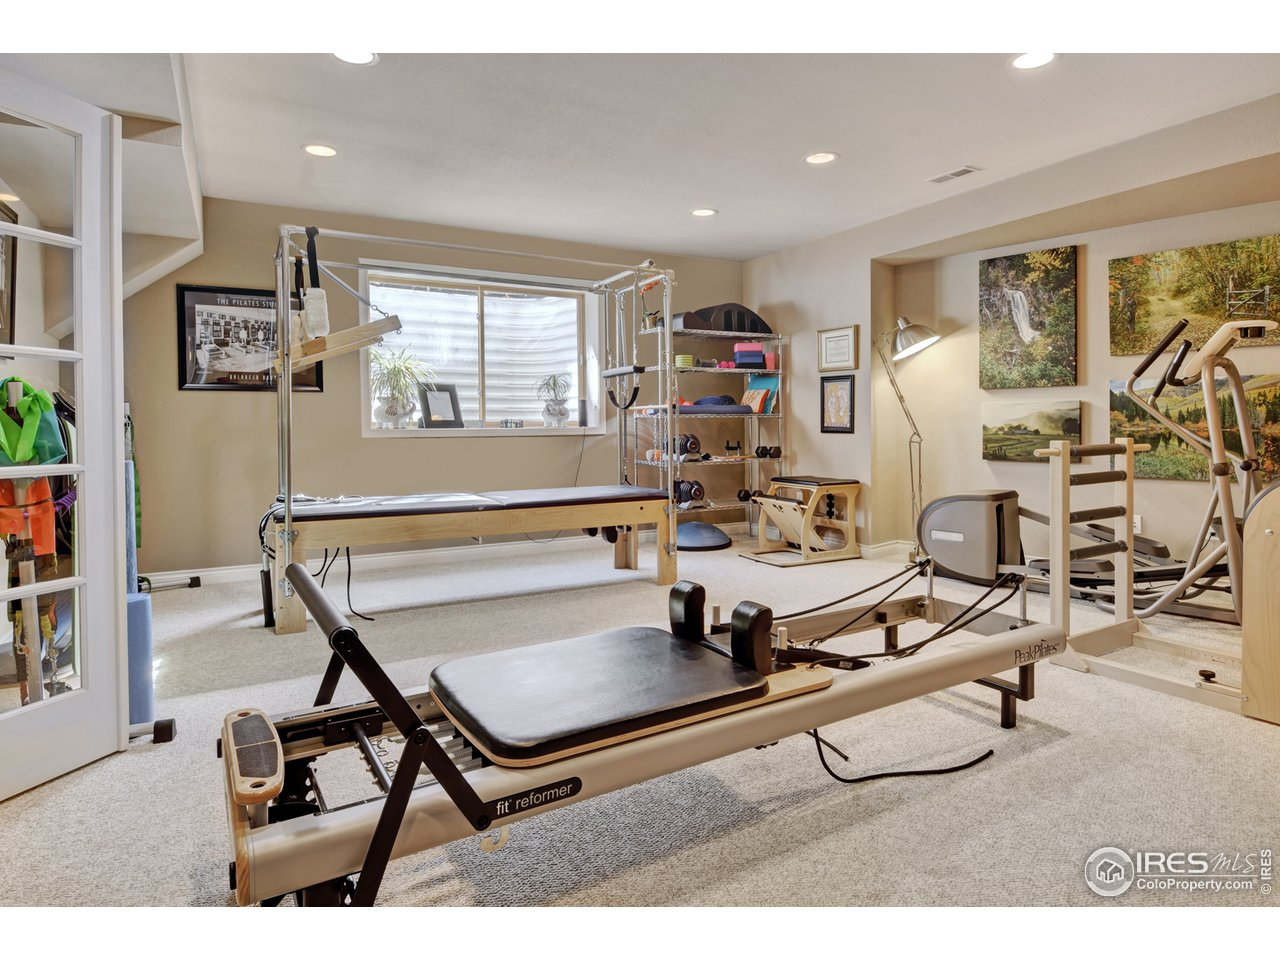 Home Gym, Media Room, Kids' Playroom, you choose